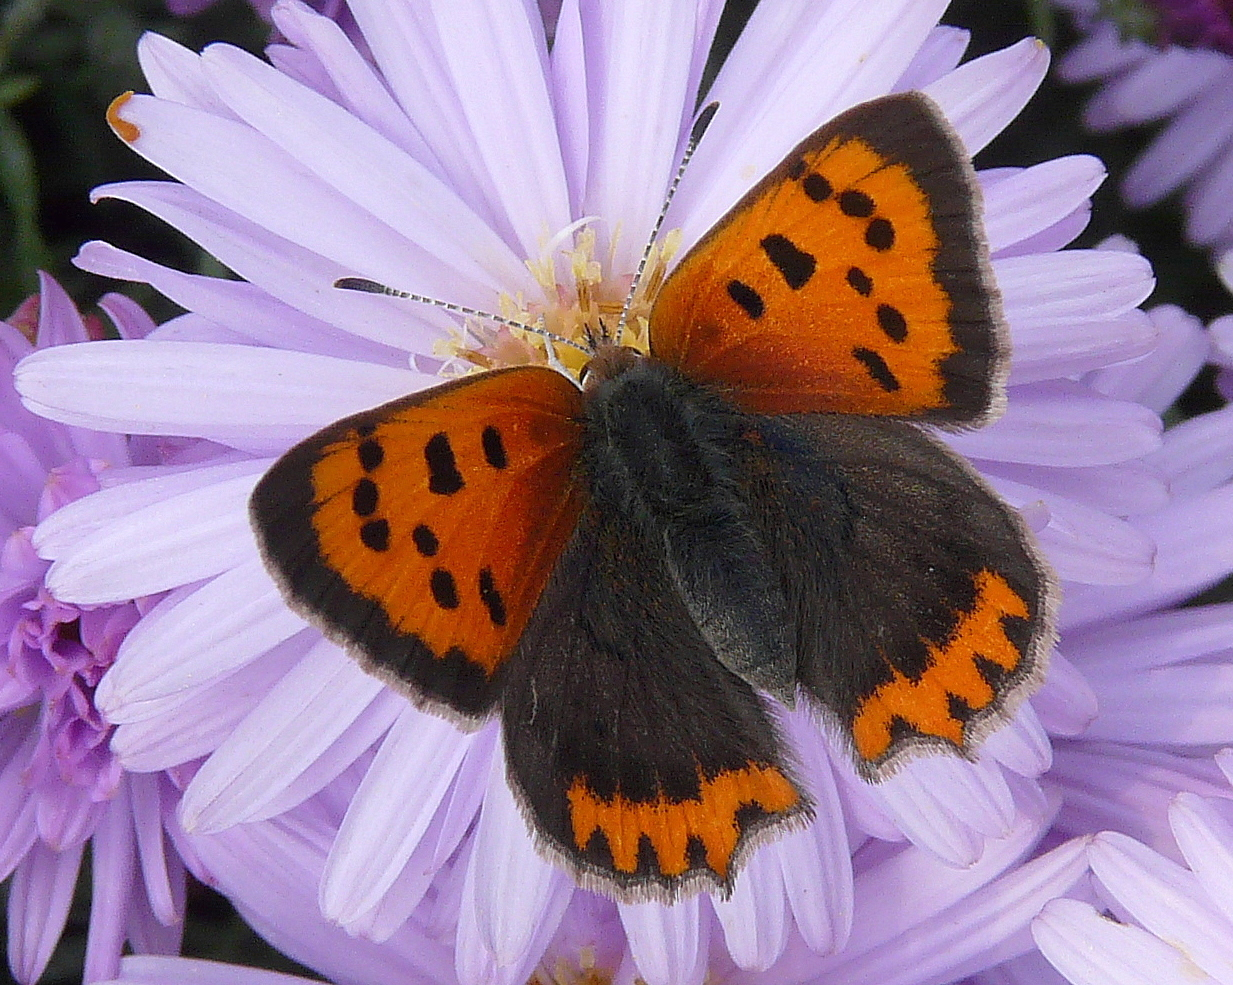 Photograph of small copper butterfly